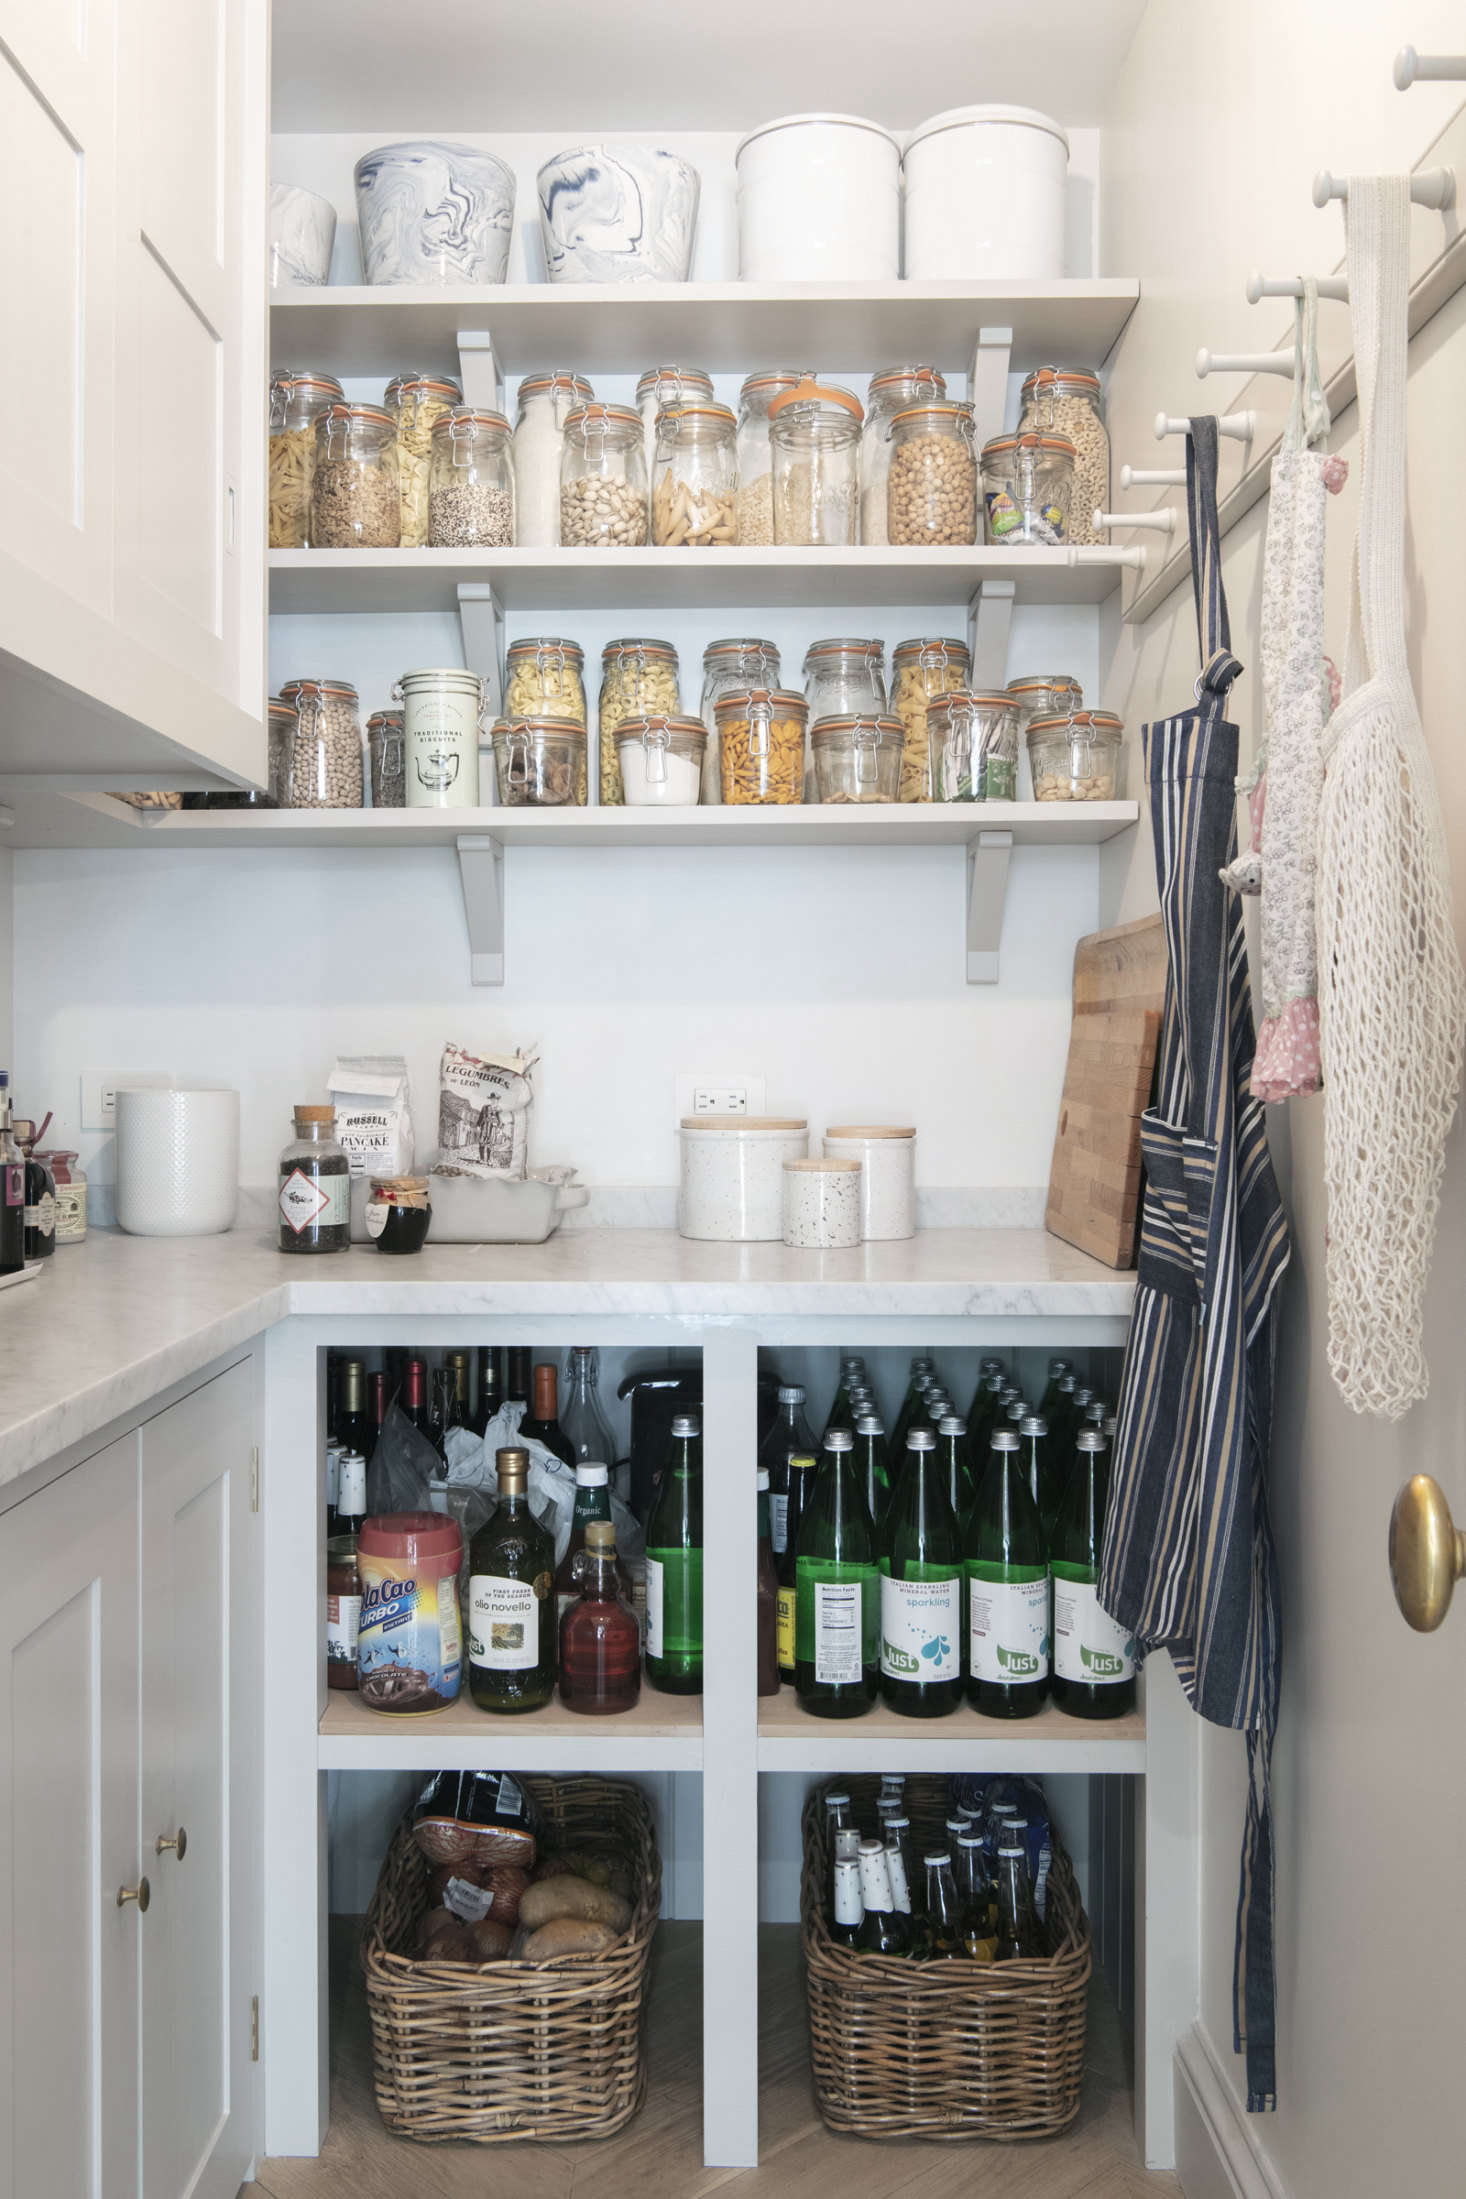 A proper pantry with a marble counter and a peg rail for shopping bags and aprons. Dry goods are decanted into Le Parfait Jars. The upper cabinets hold the microwave and coffee machine; bakeware is stowed in the lower ones.